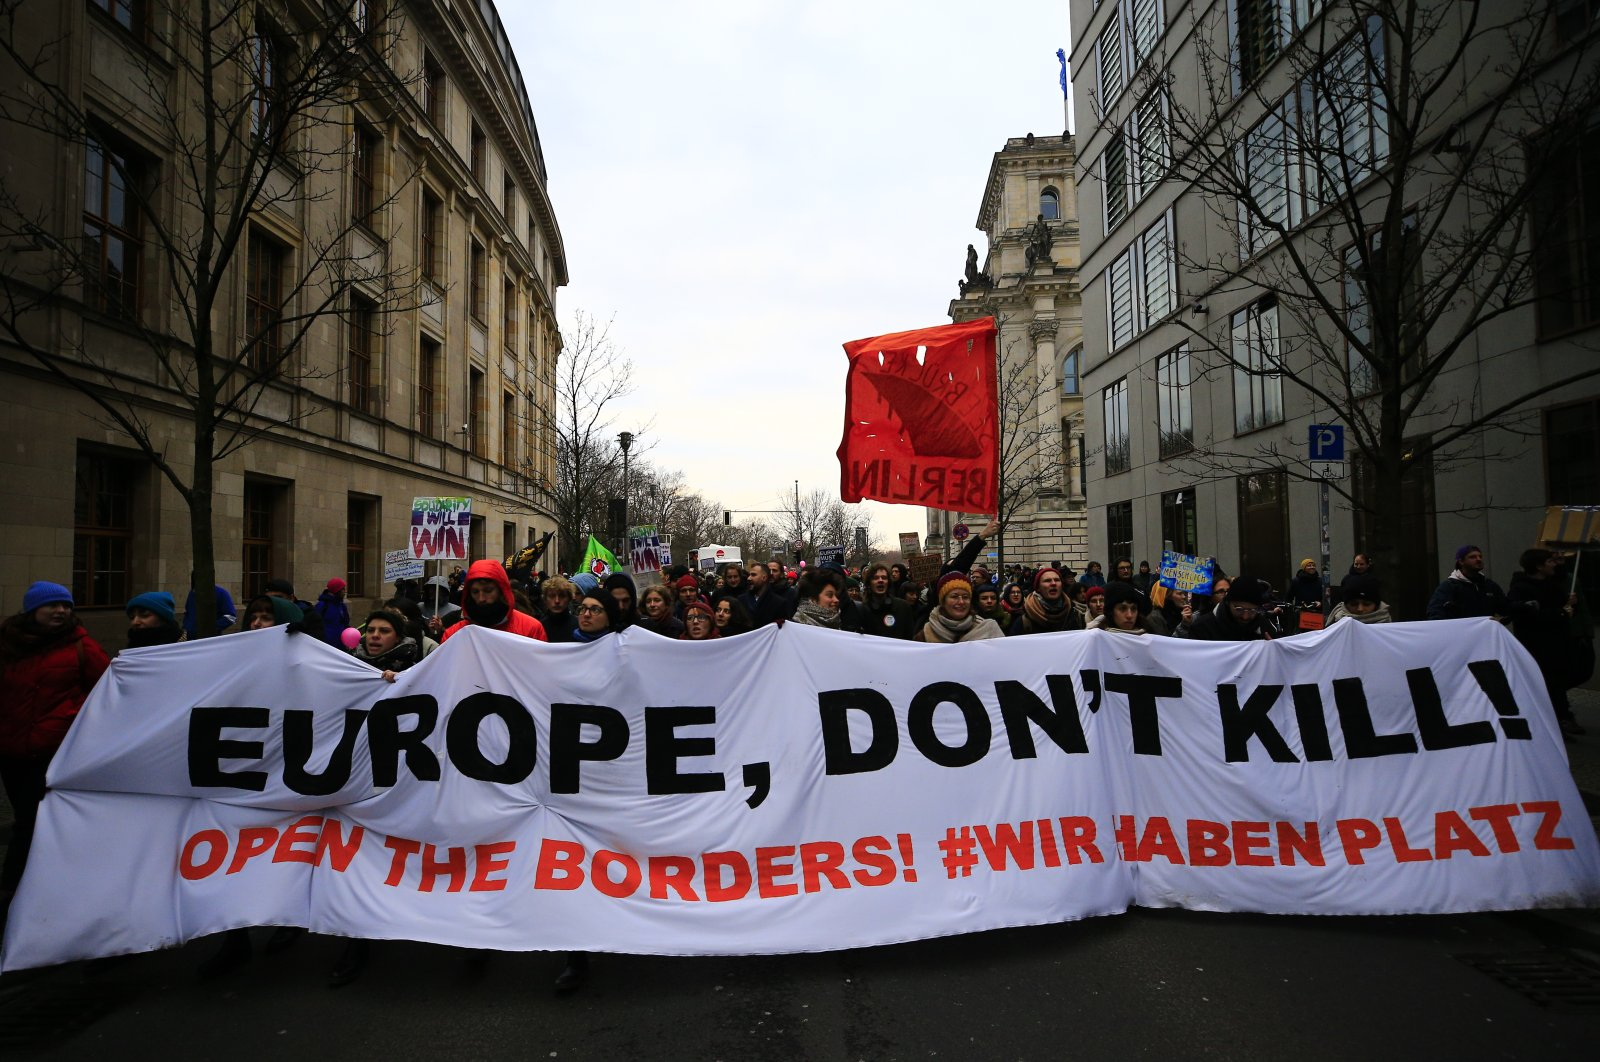 """Protesters in German capital Berlin called on the EU to open borders to refugees, writing on banners, """"Europe, don't kill!"""" March 7, 2020. (AA Photo)"""